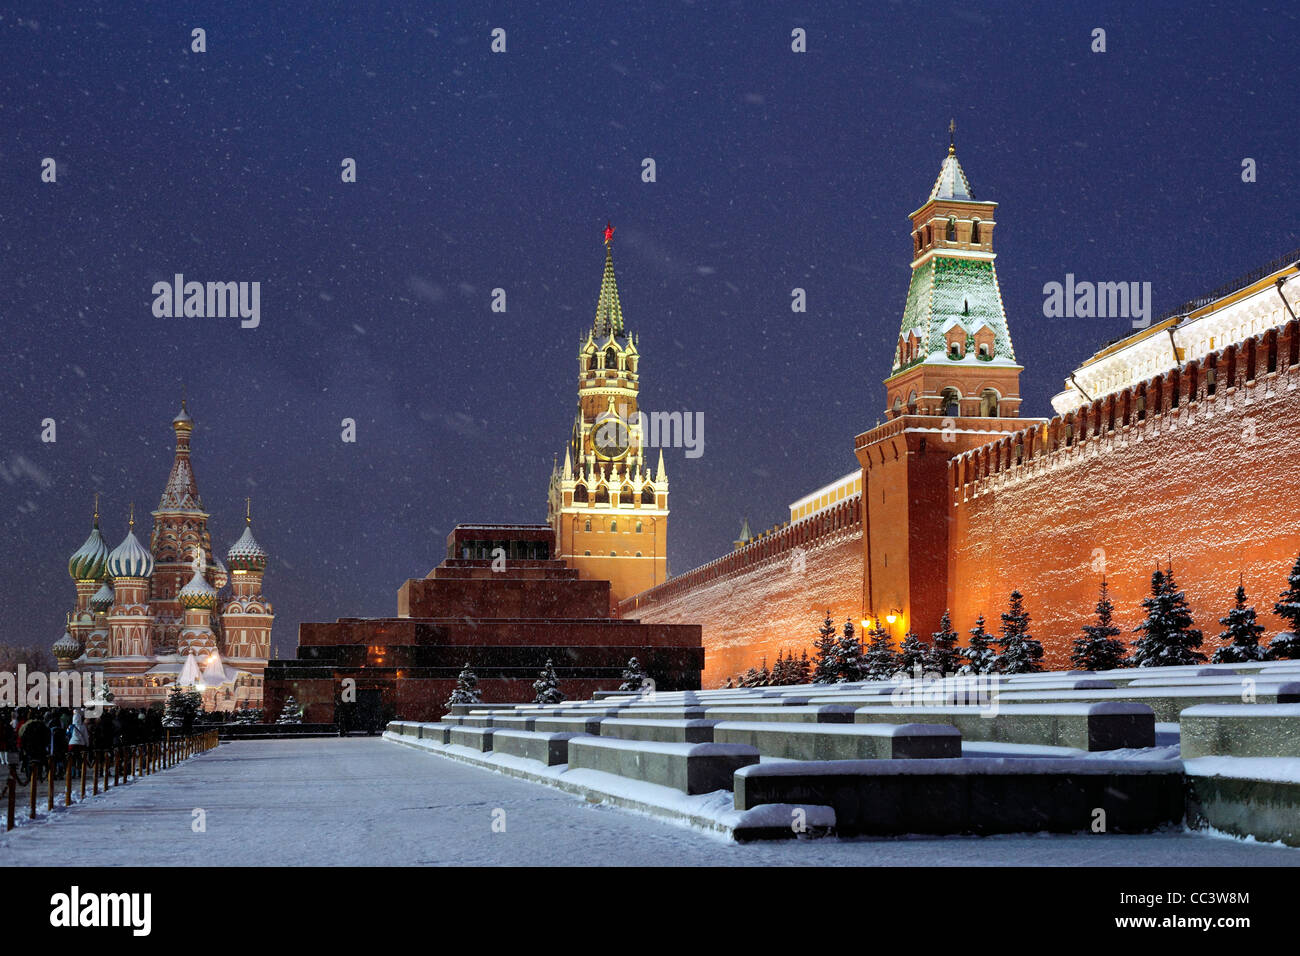 Saint Basil's Cathedral at night, Red square, Moscow, Russia - Stock Image